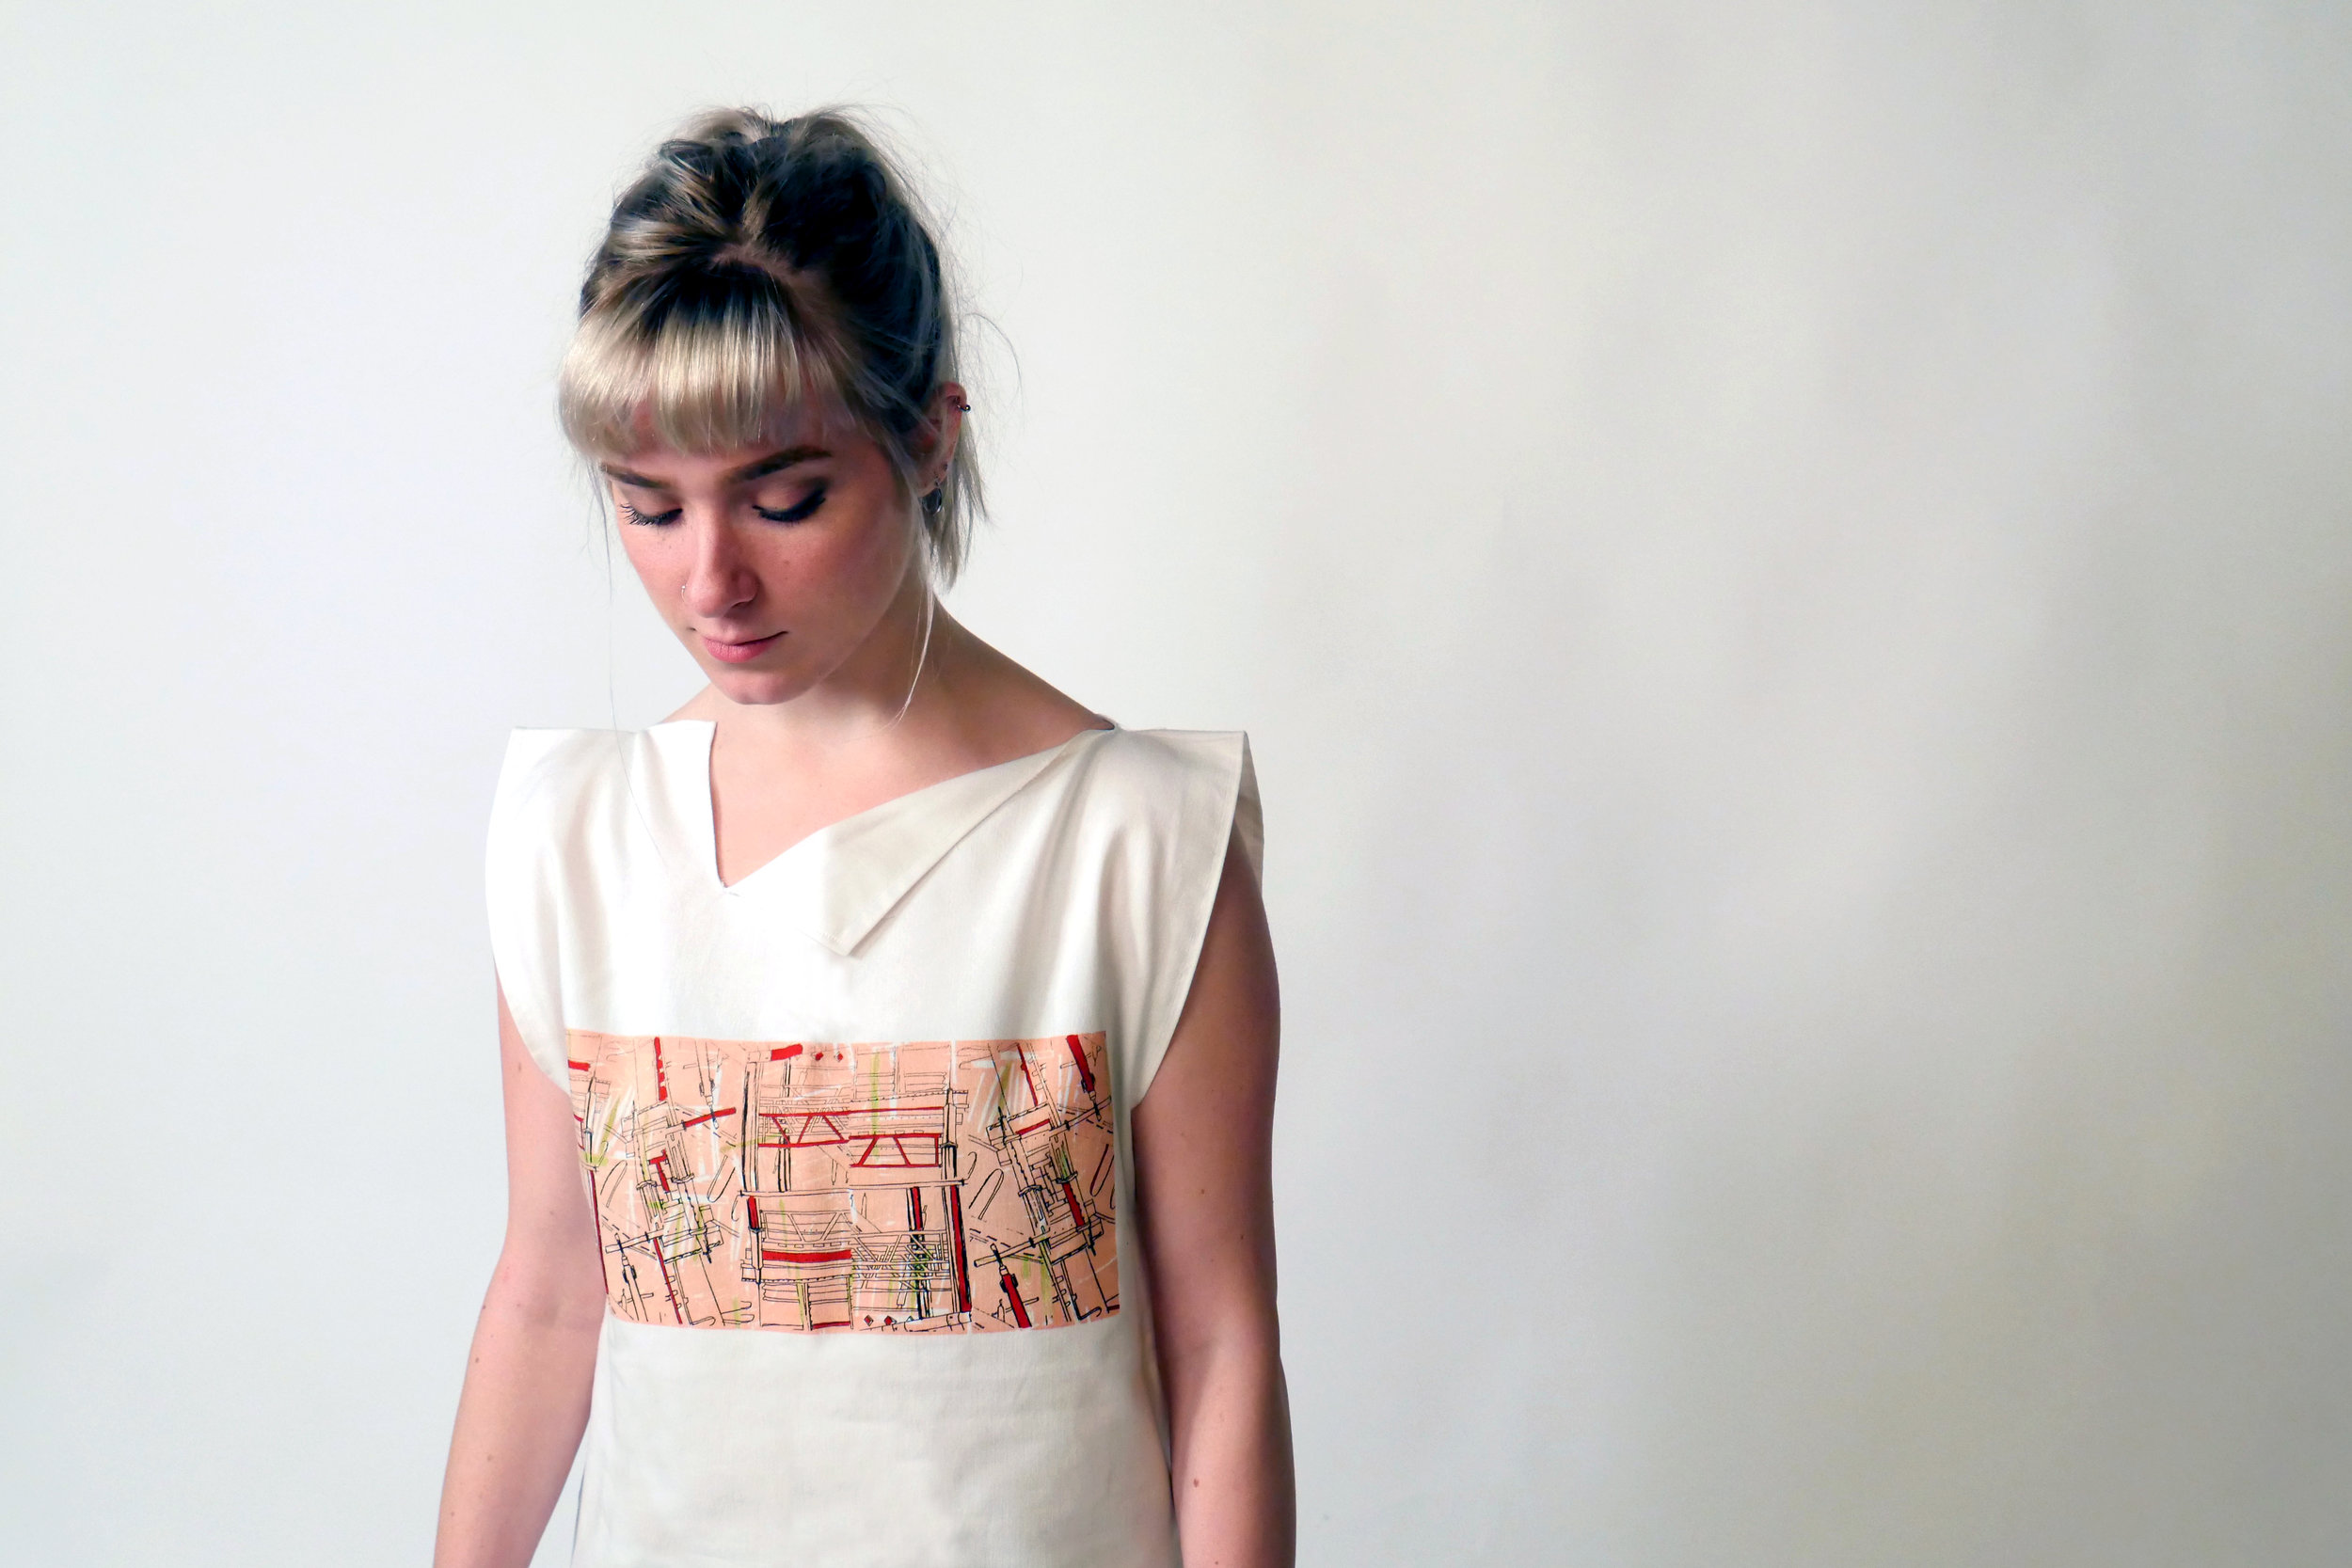 - Using zero-waste garment construction and design activism themes to create an awareness campaign, highlighting the issue of waste in the fast fashion industry.Controversial placement of print shows the 15% of fabric, which is usually discarded at the pre-consumer stage, as an invaluable section to the garment, creating a talking point and gaining consumer attention.